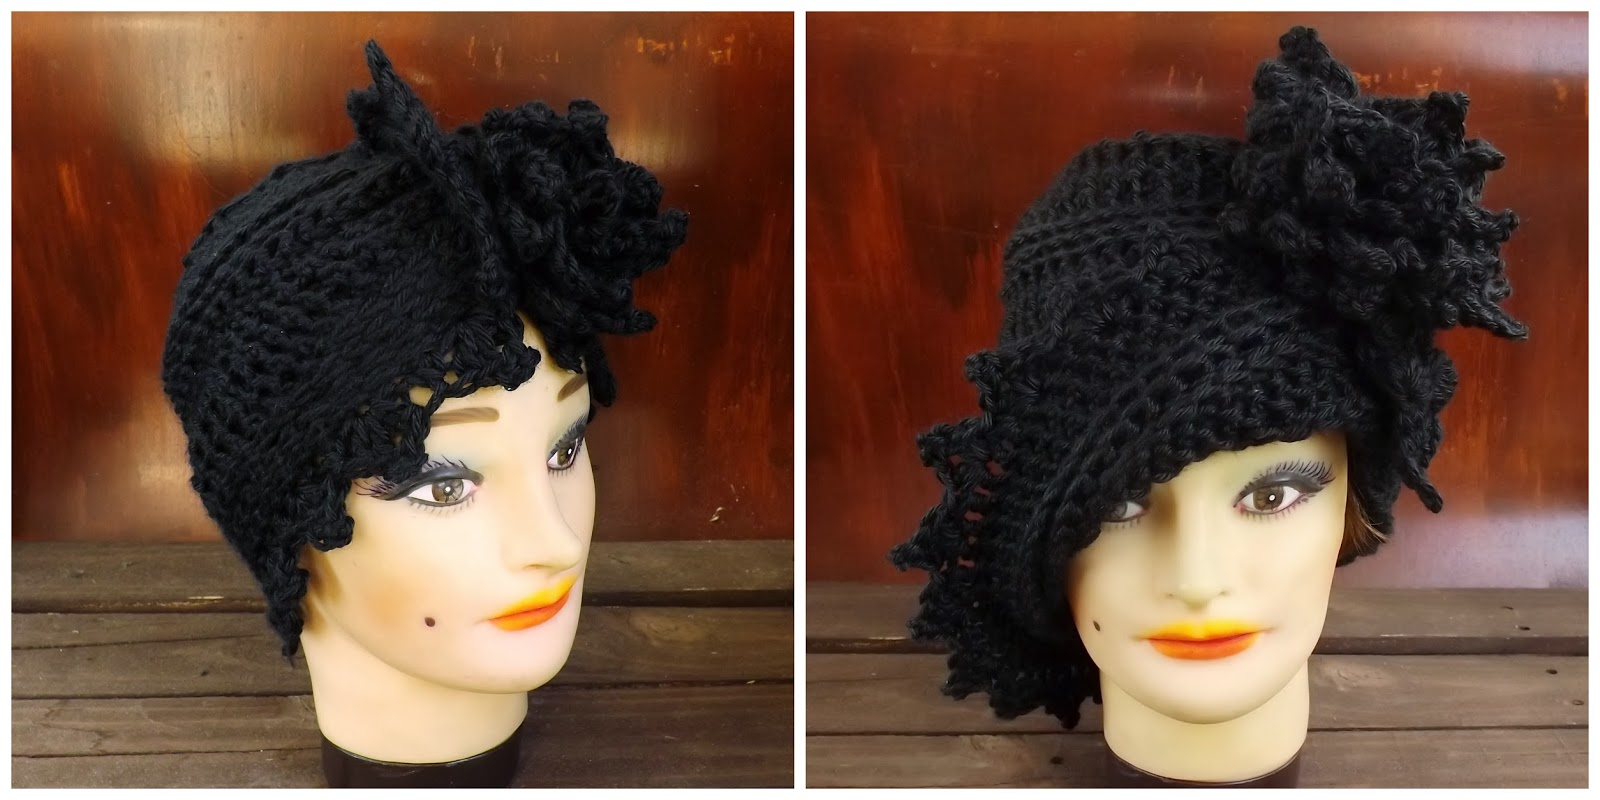 The ALEJANDRA Crochet Turban Hat in Black (left) and LAUREN Crochet Cloche Hat in Black Hat (right)